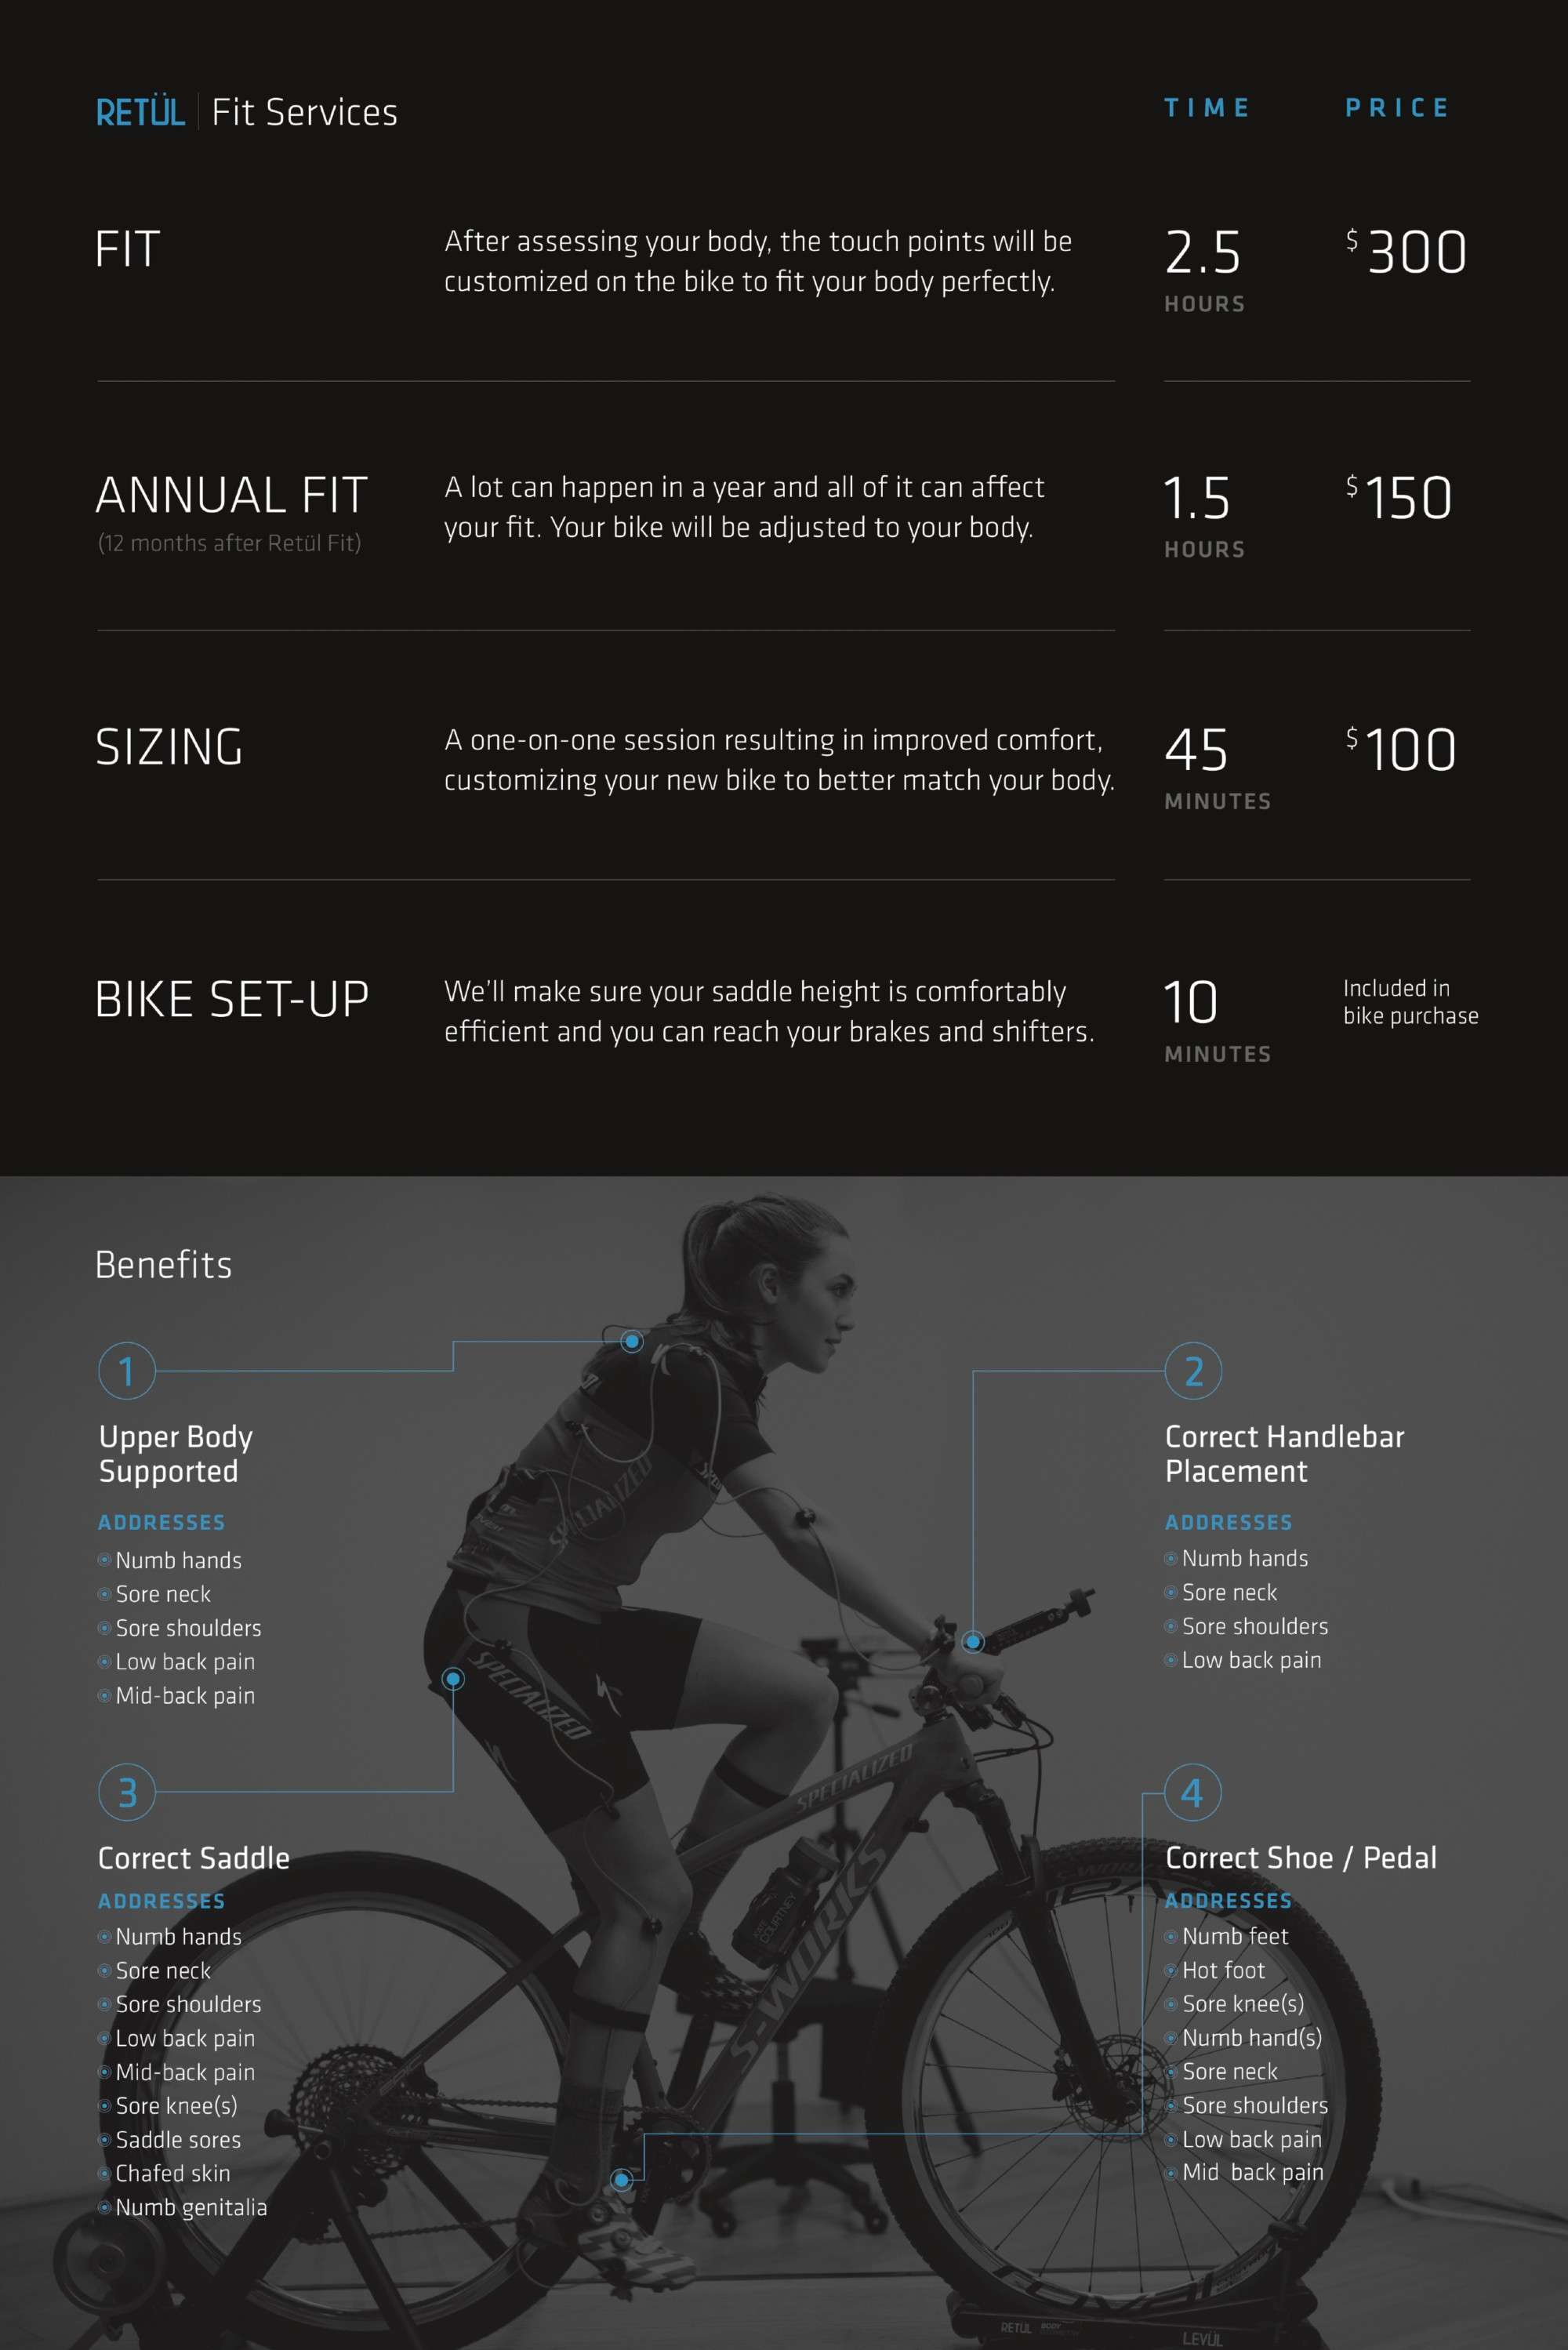 list of Retul Fit services and benefits